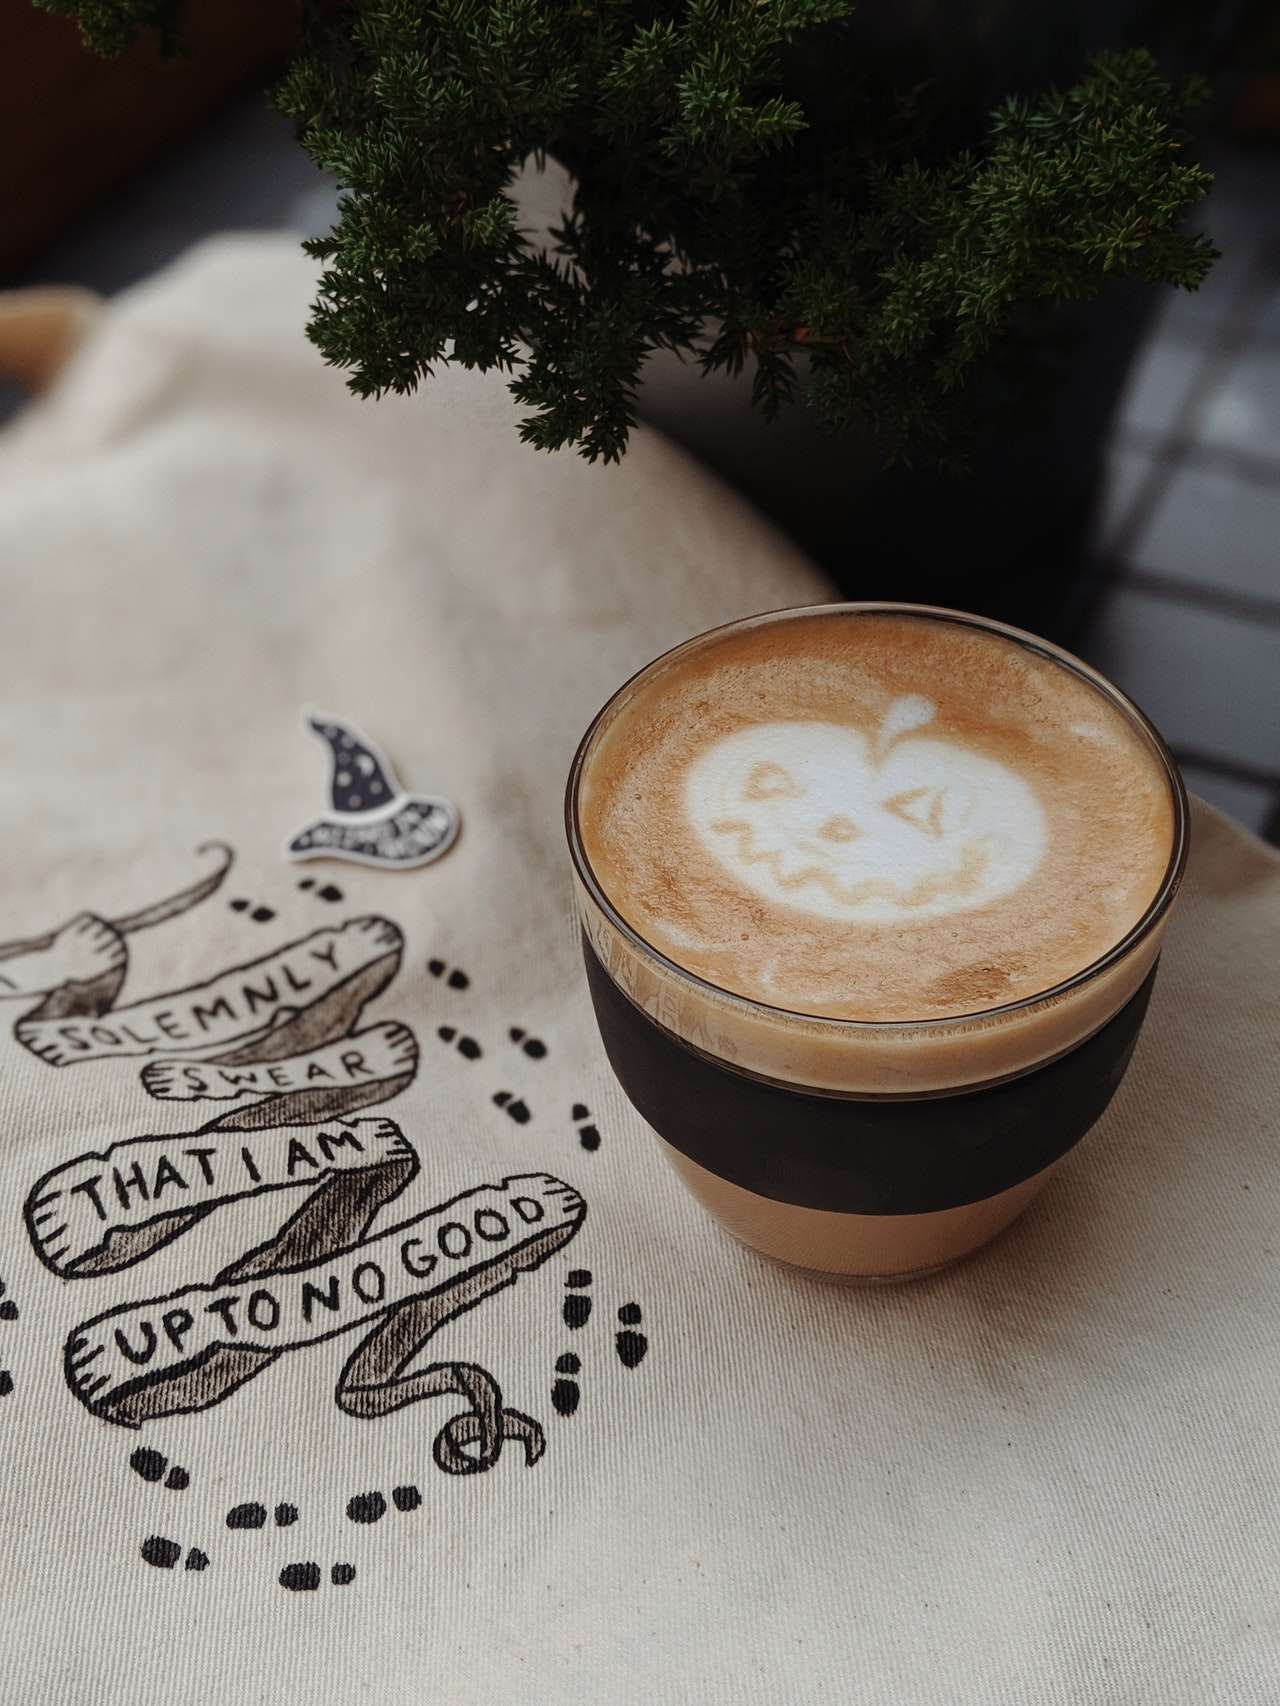 A cup containing coffee with Halloween design